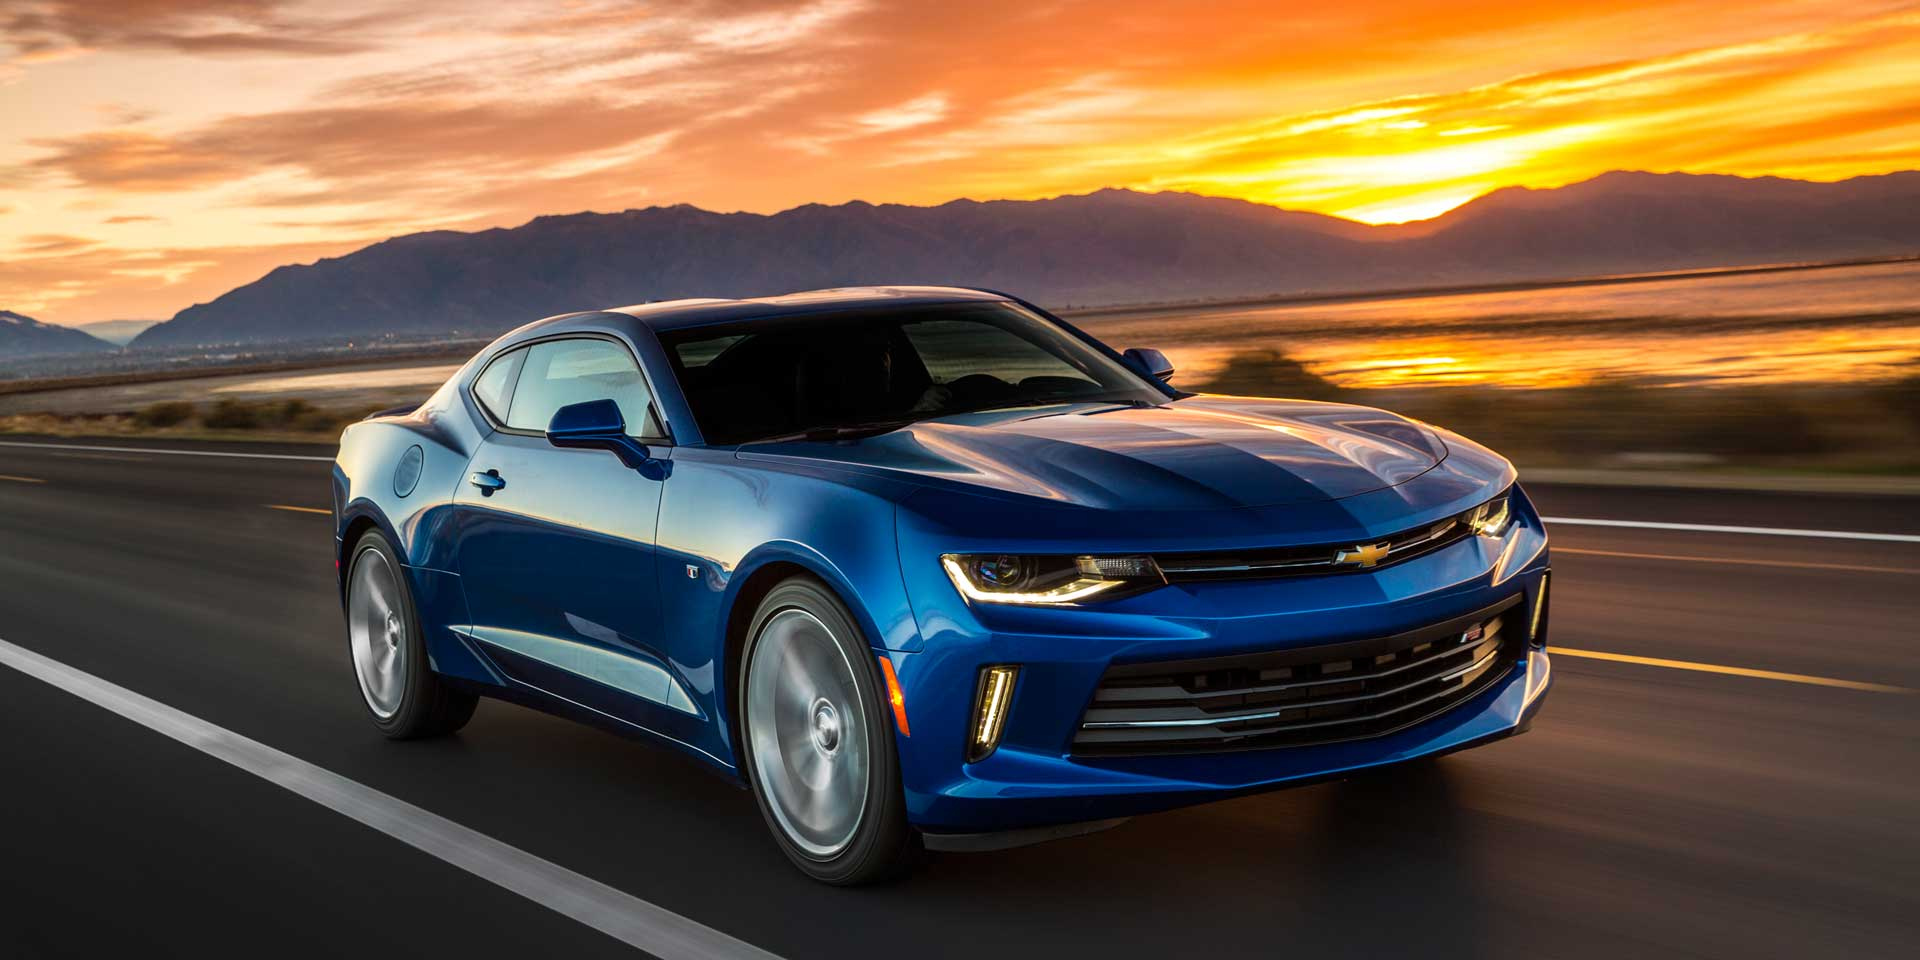 2018 Chevrolet Camaro Vehicles On Display Chicago